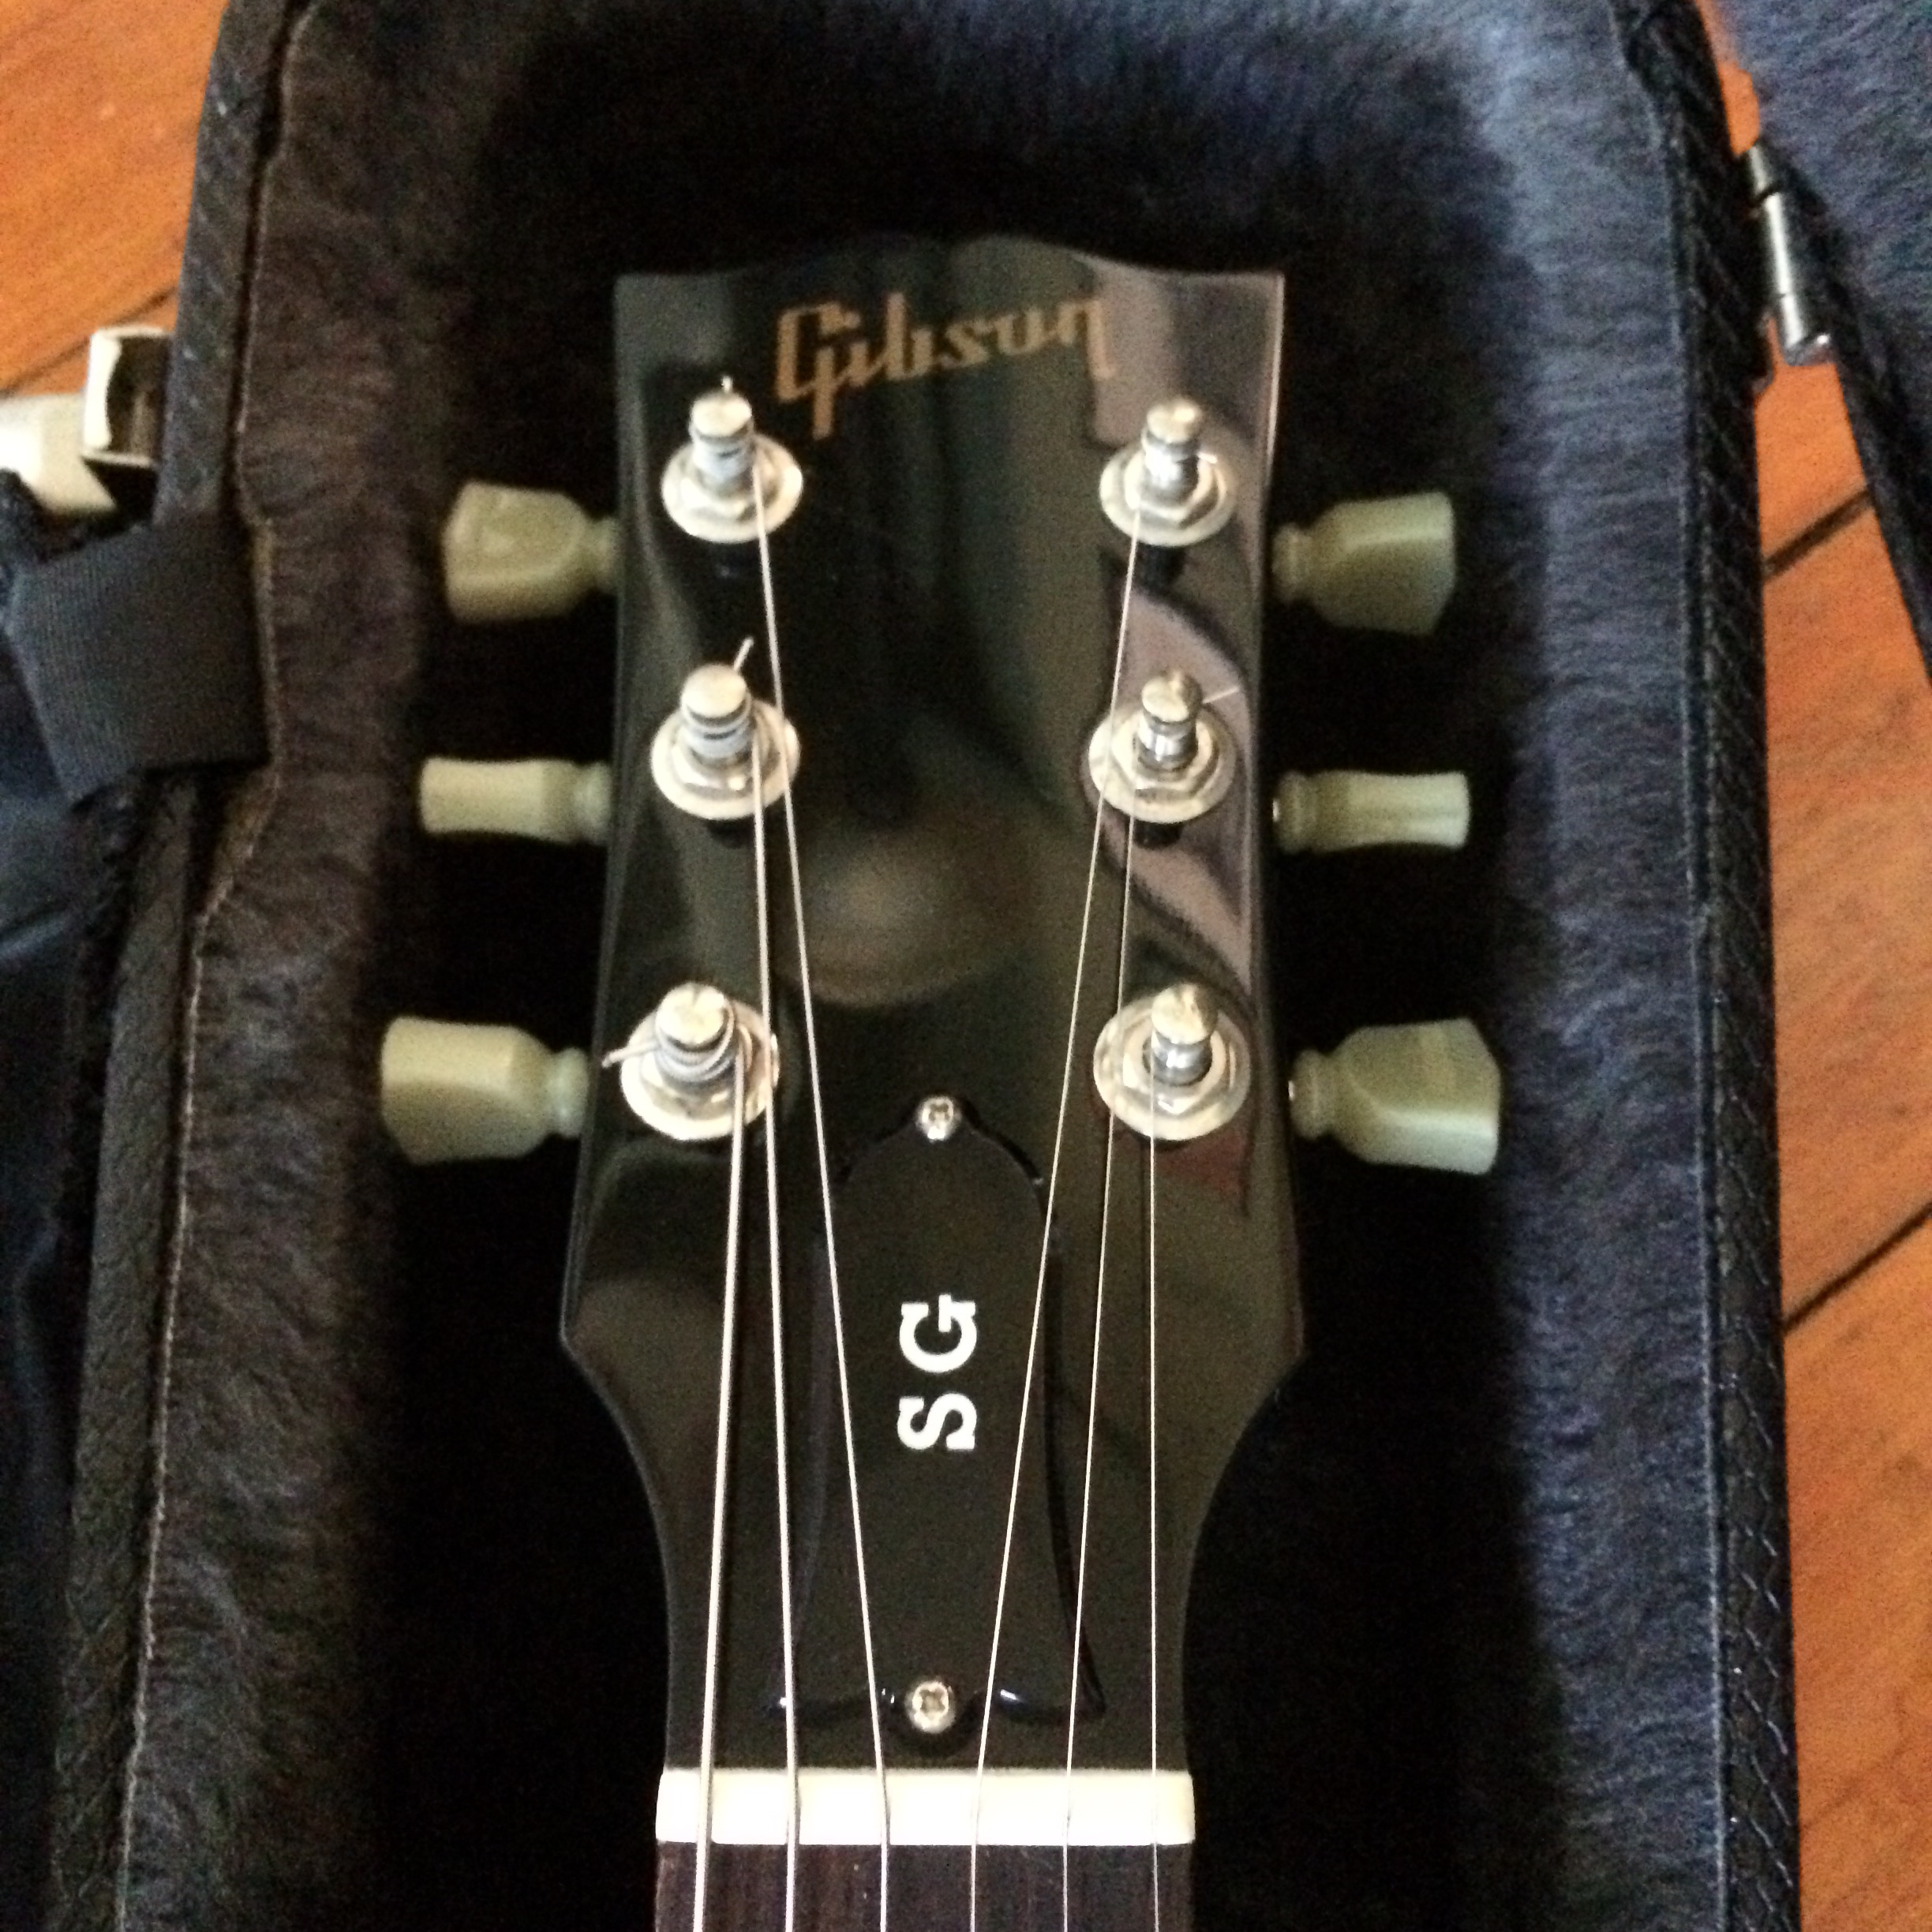 Steven Queen City Guitar Epiphone Les Paul Custom Here Is An Example Of Modern And 50 S Wiring Gibson Customer Support Bless Their Souls Provided That According To Records It Started Life As A 2001 Sg Special In Platinum